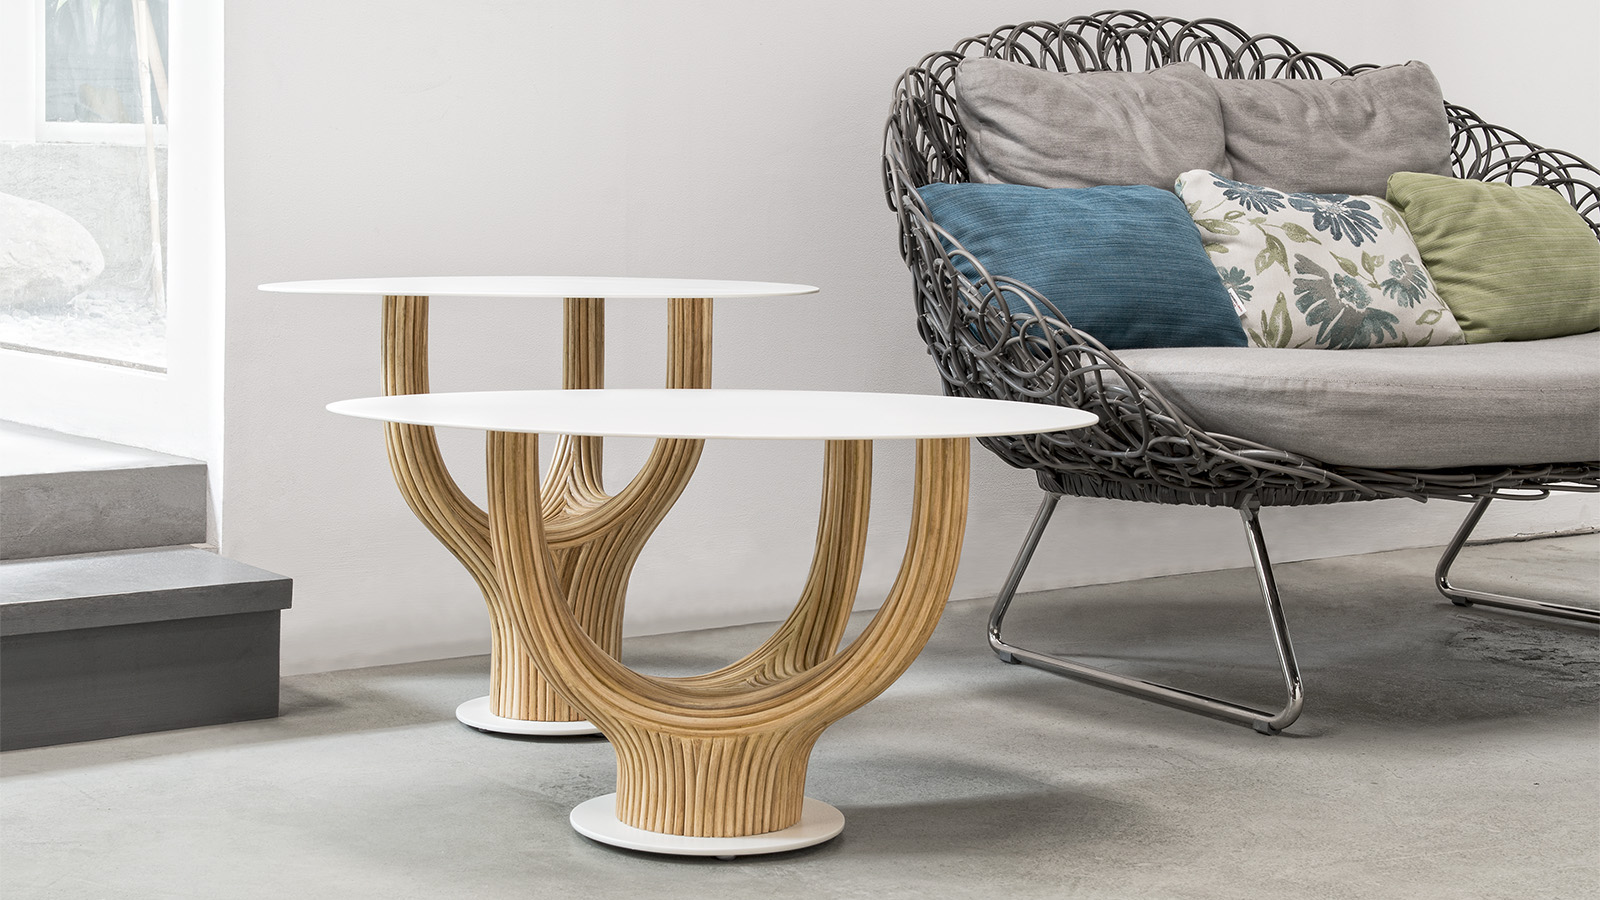 Kenneth Cobonpue Acacia table collection is made of rattan wood with a glass top